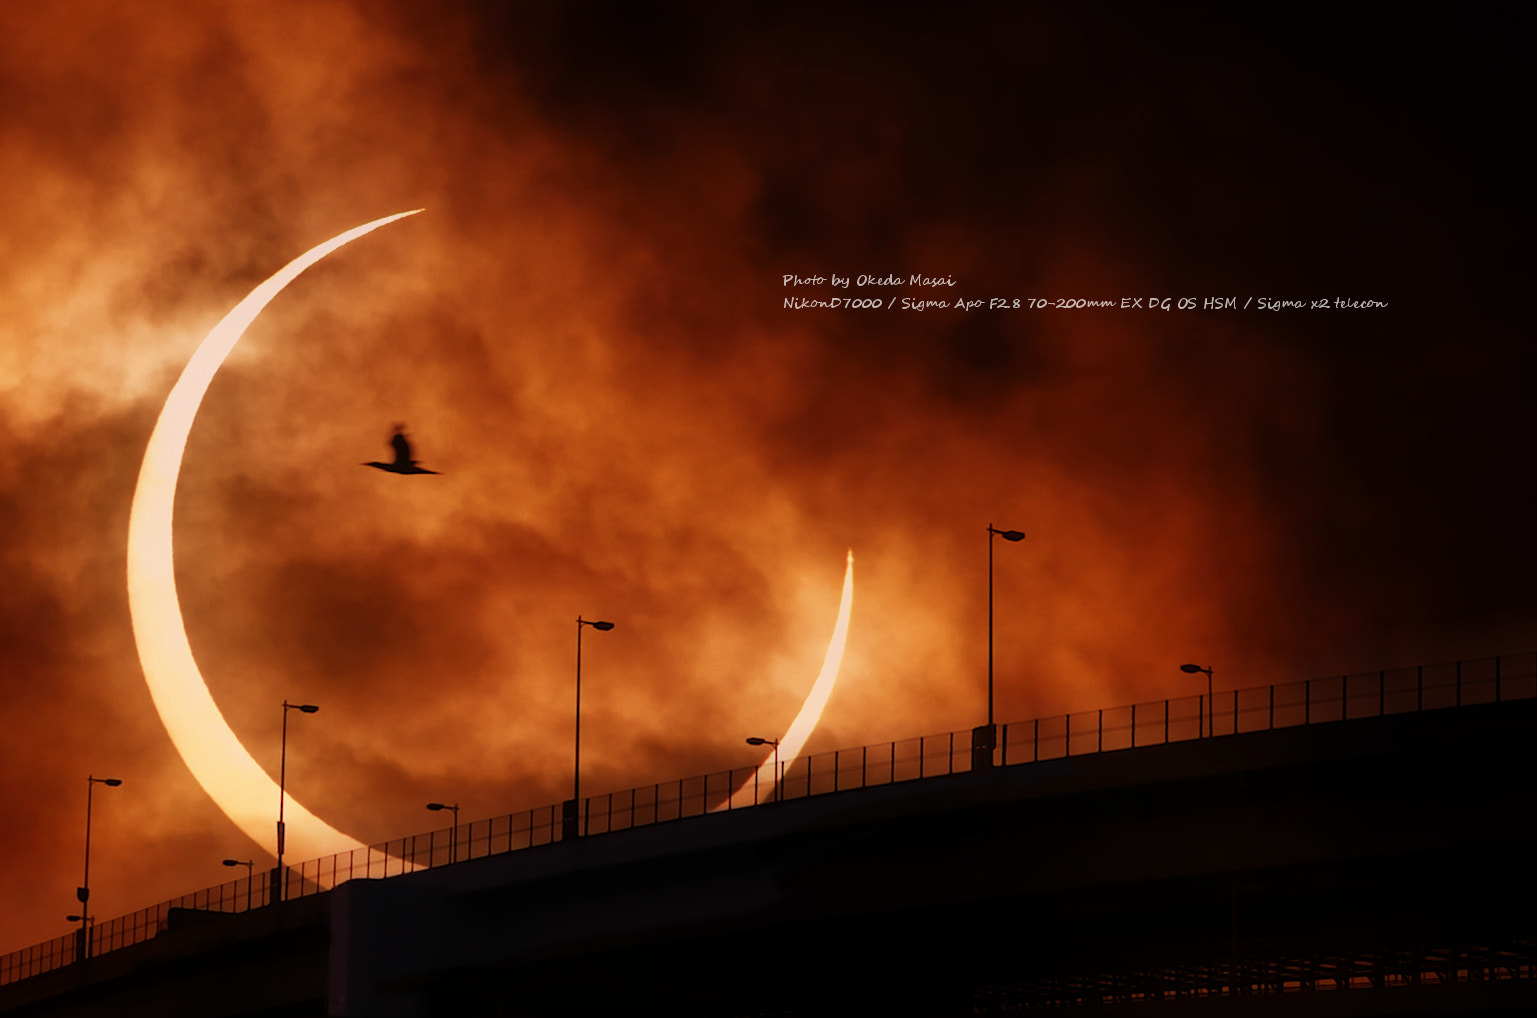 Photograph Treason of the moon (composite picture using the annular solar eclipse in tokyo 2012..5.22) by Masai Okeda on 500px